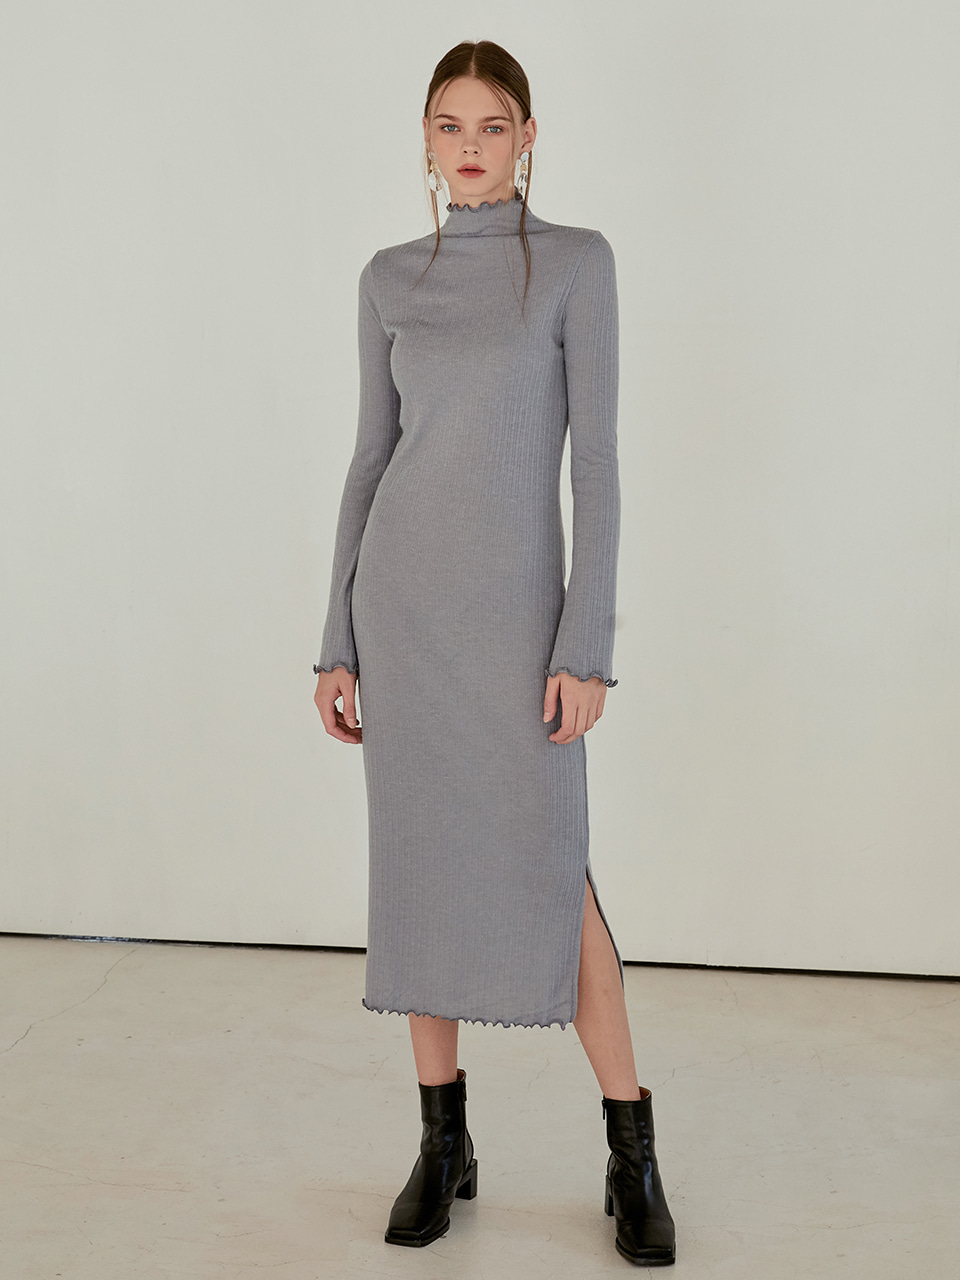 [한성민 착용] Layered Slim Long Dress, Light Blue